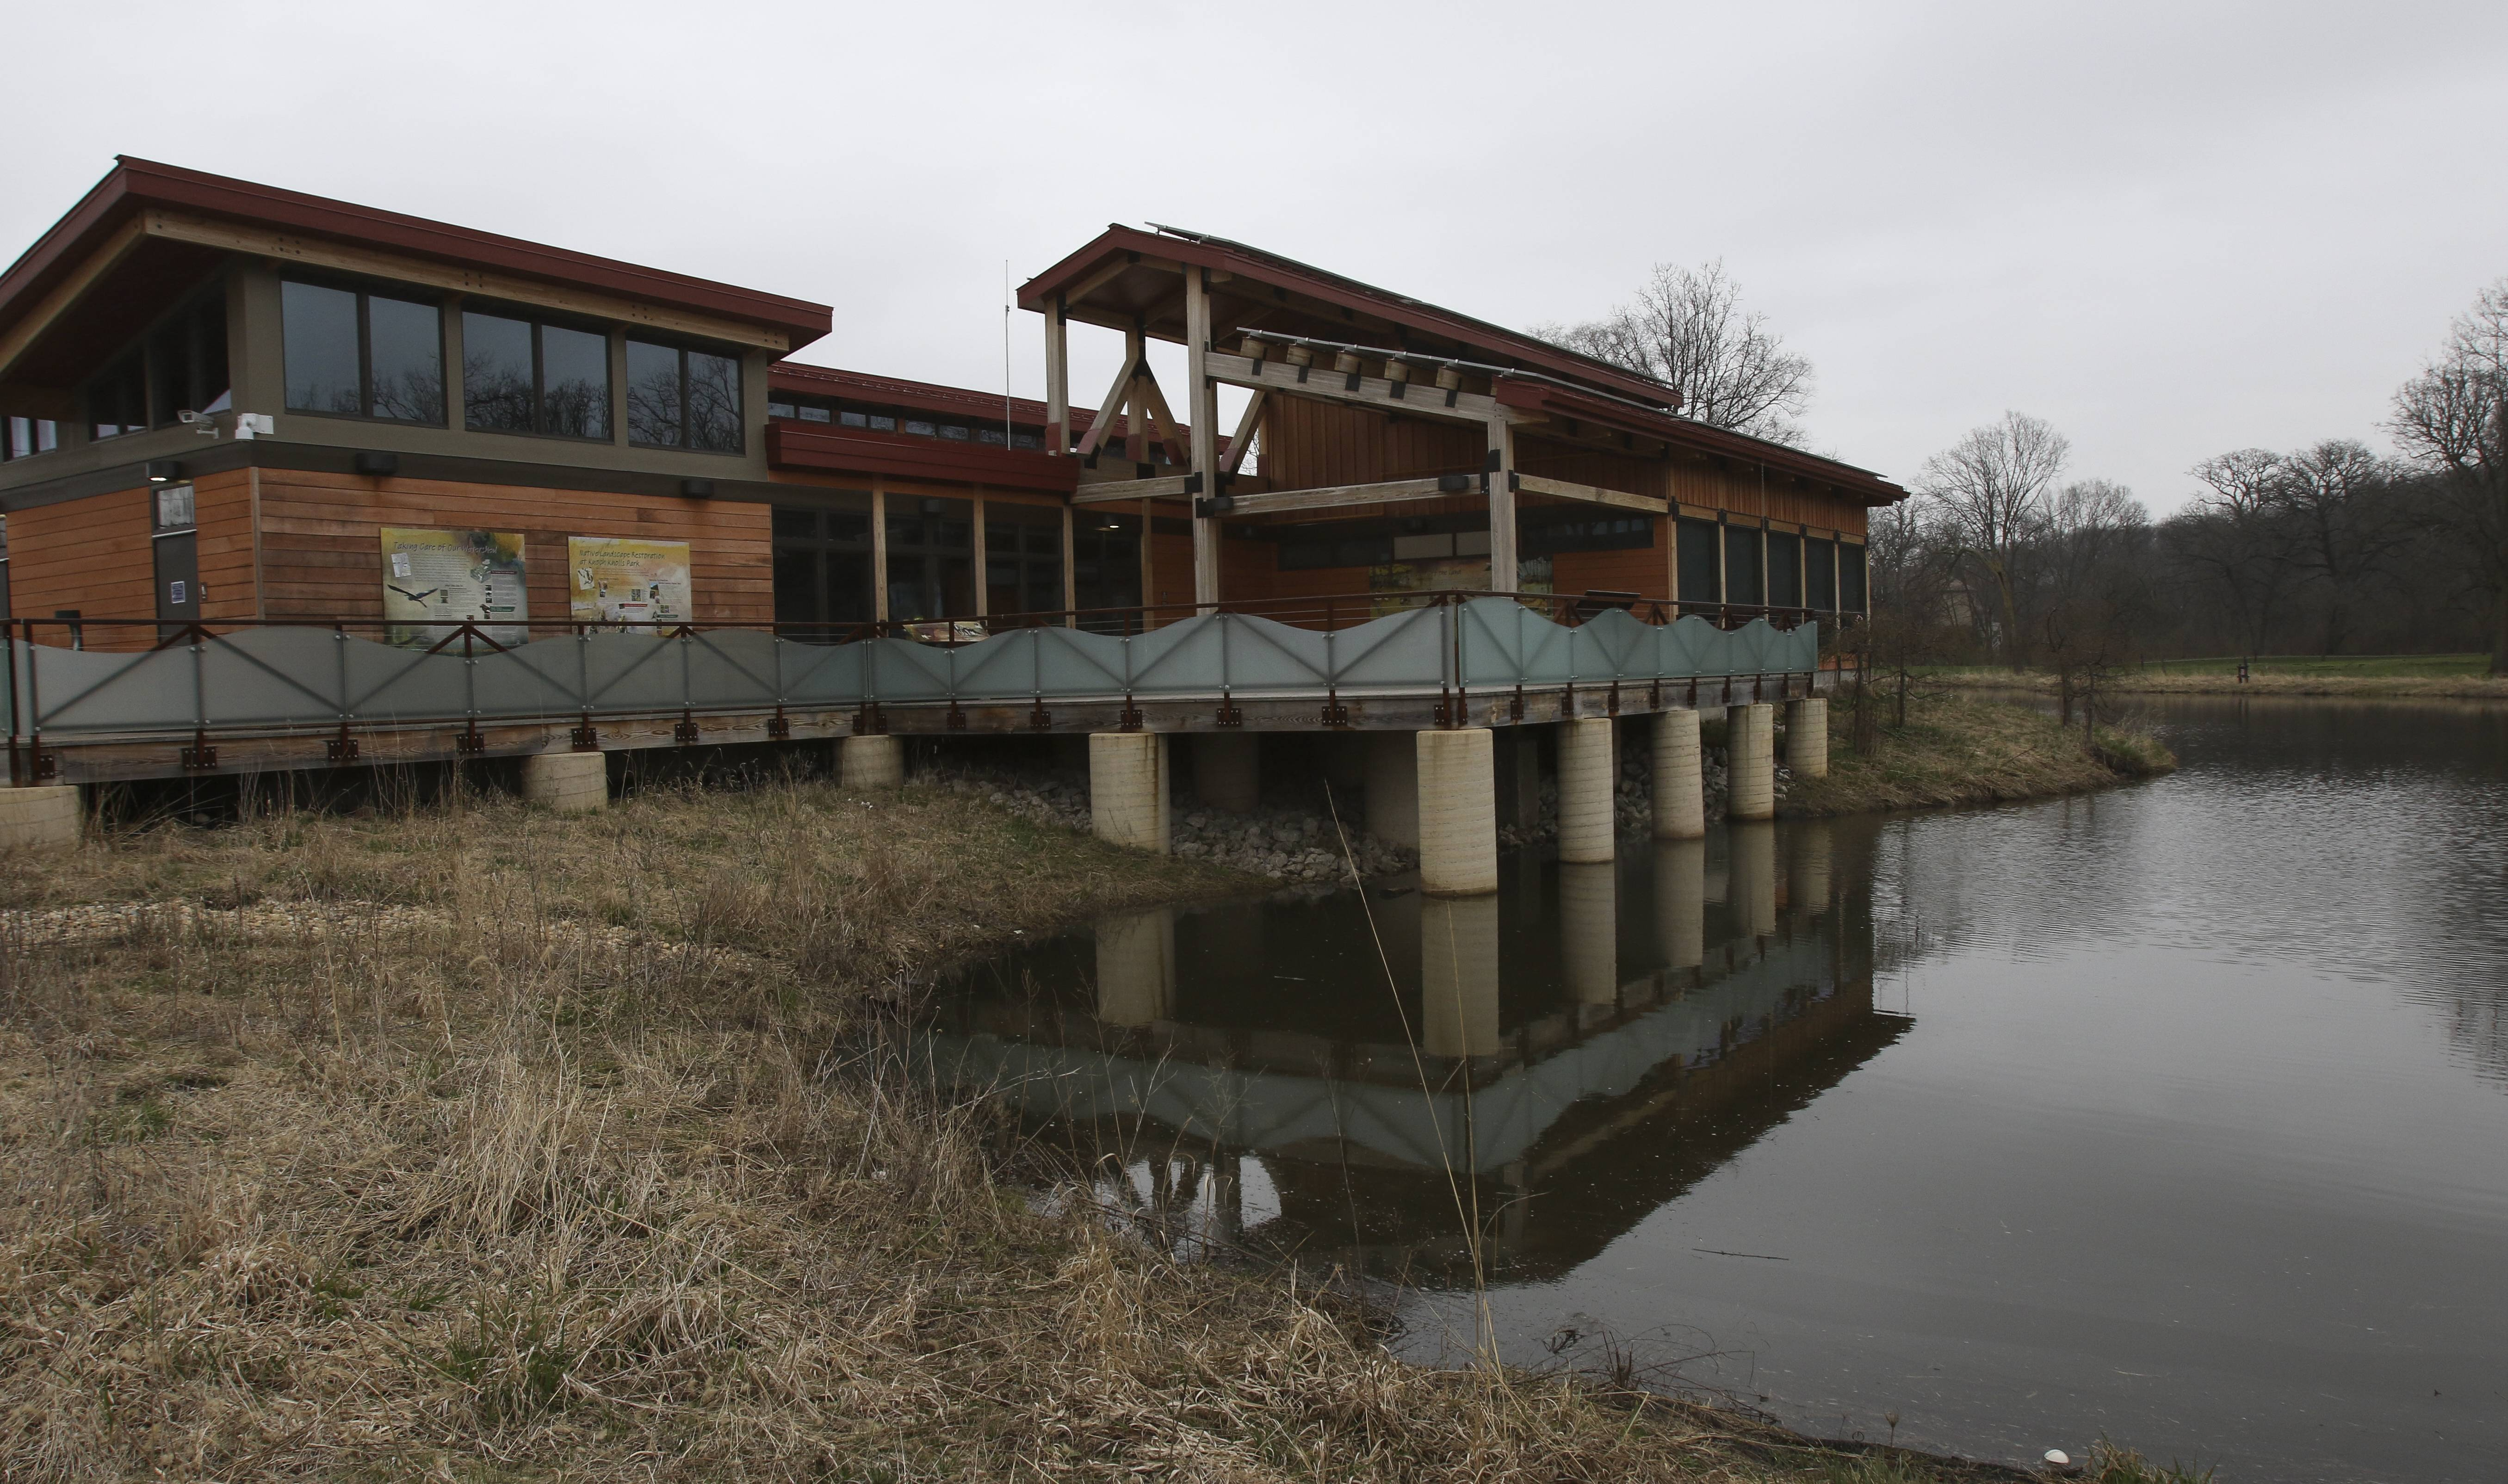 Flooded Naperville nature center closed for 4-6 weeks